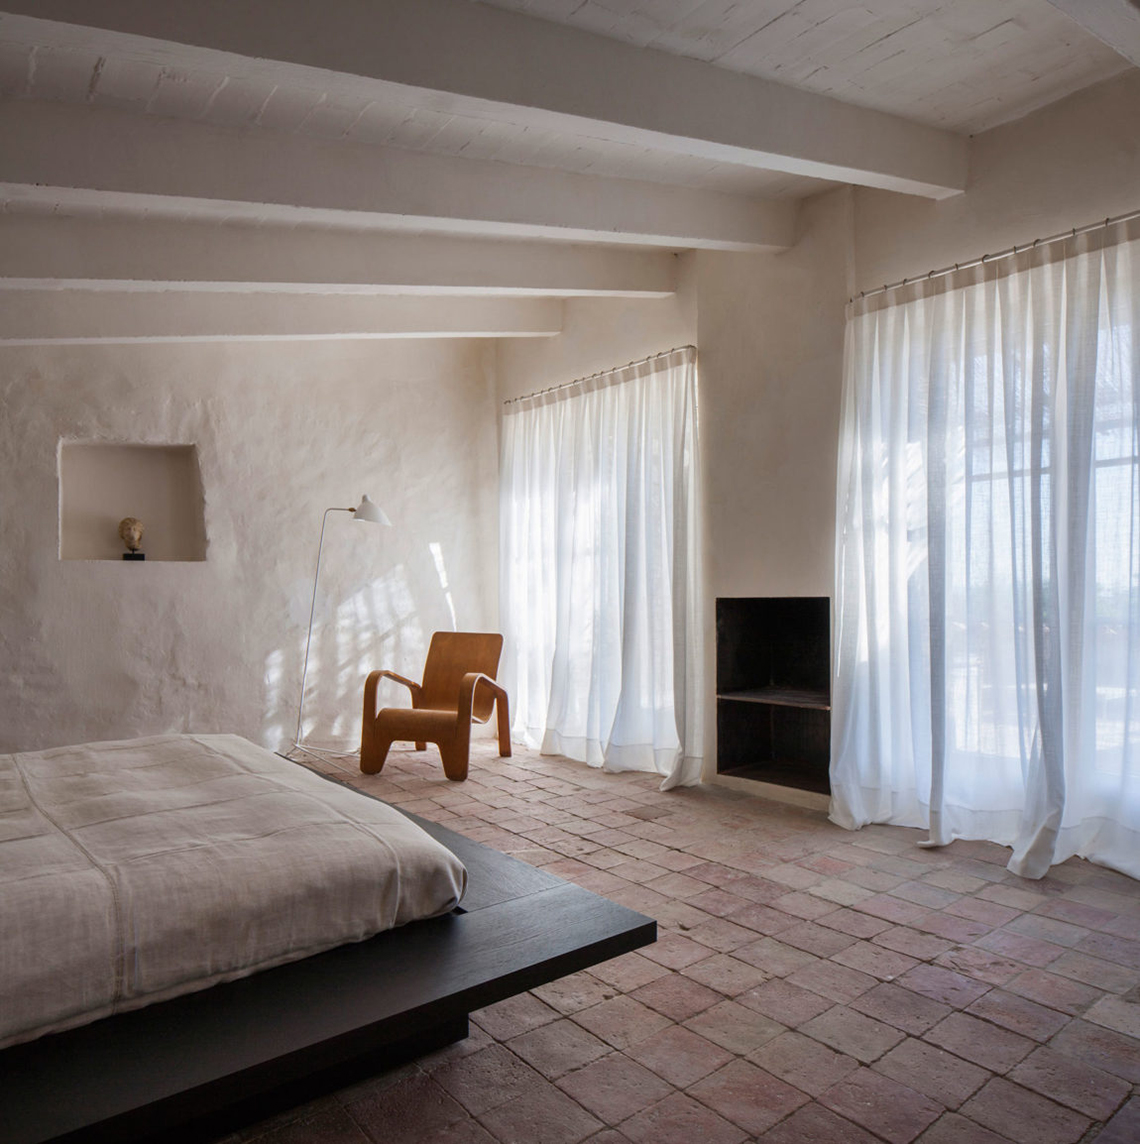 Bedroom, Inspiration, Interiors, Sunday, Sanctuary, Oracle, Fox